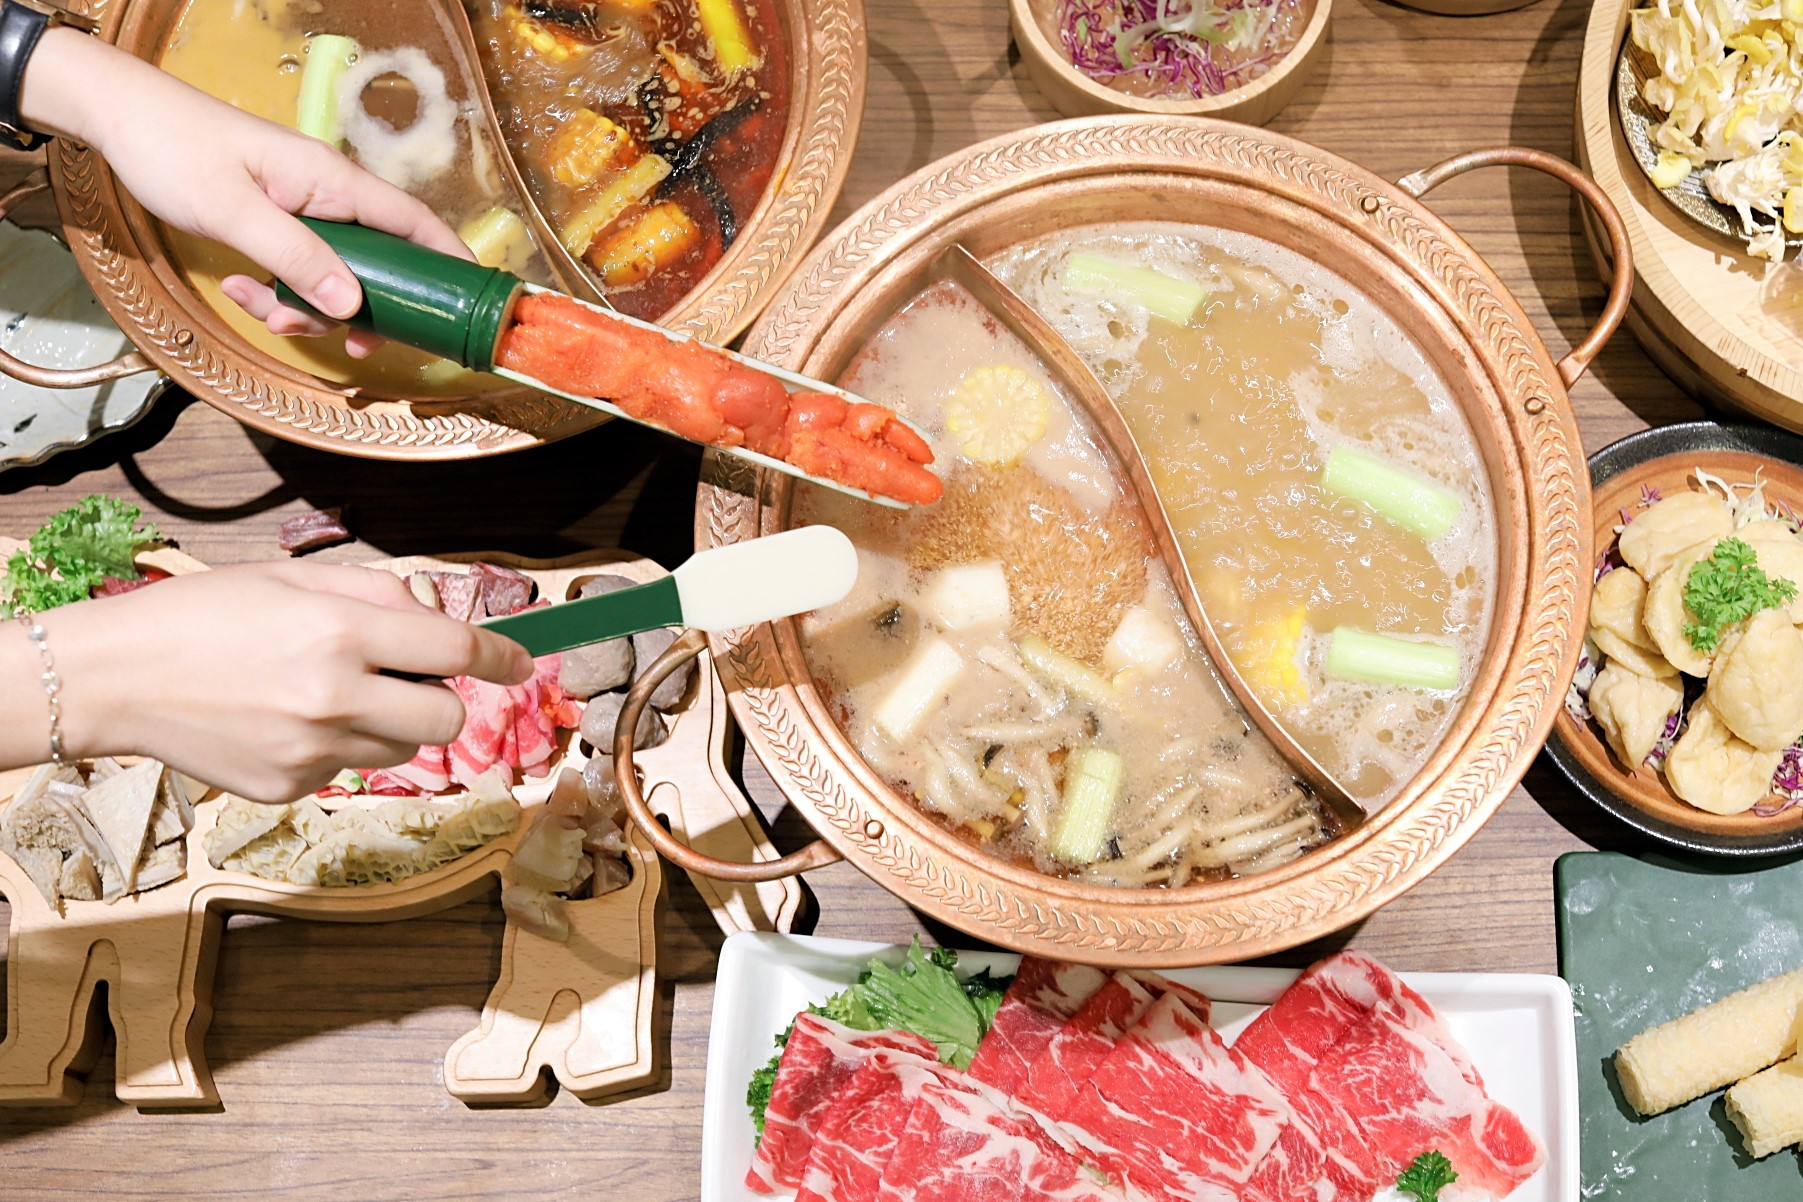 Makino – NEW Japanese Shabu-Shabu Restaurant With Tasty Mentaiko And Tonkotsu Soup Bases, At Paya Lebar Quarter PLQ